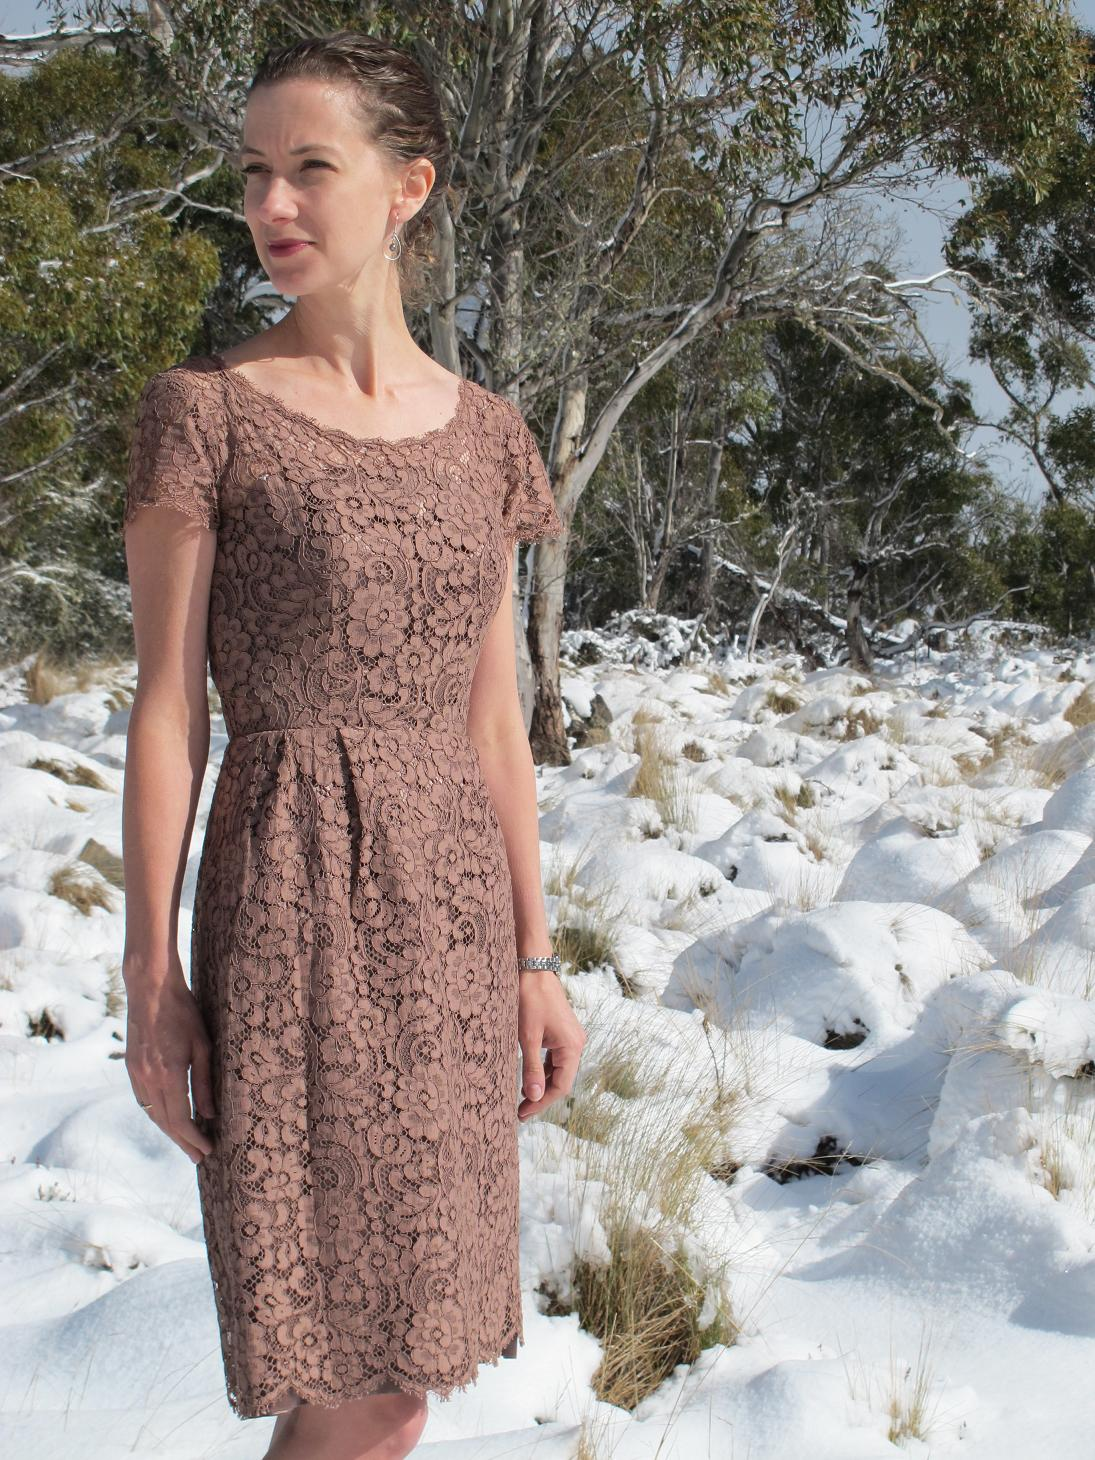 Vintage Clothing Do You Think Its Coming Back: A VINTAGE DRESS FOR THE OLD GAL